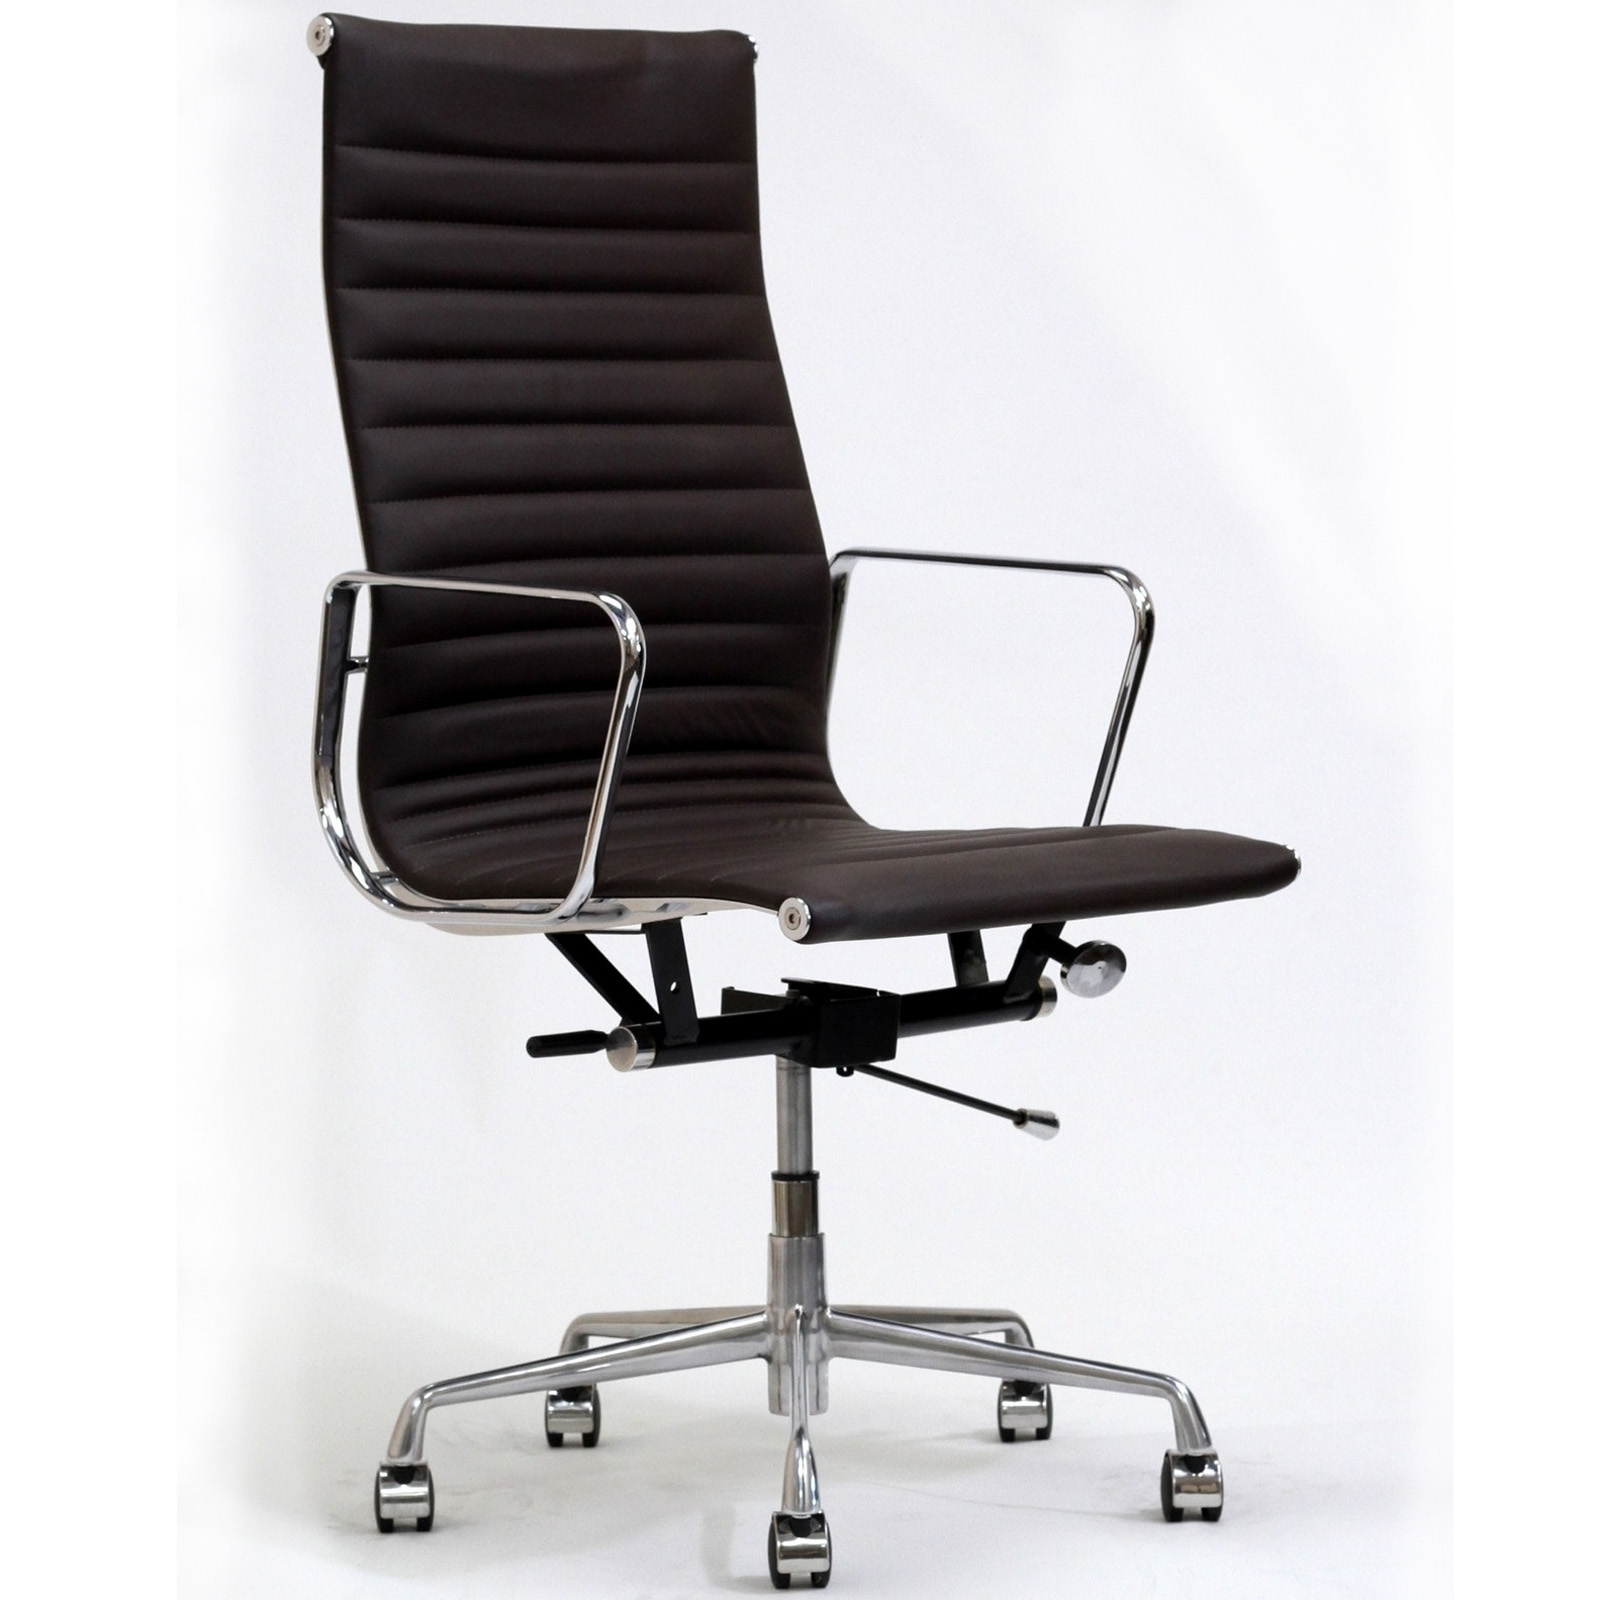 Well Liked Chair Design Ideas. Best Stylish Office Chairs Ideas: Stylish Regarding Expensive Executive Office Chairs (Gallery 8 of 20)